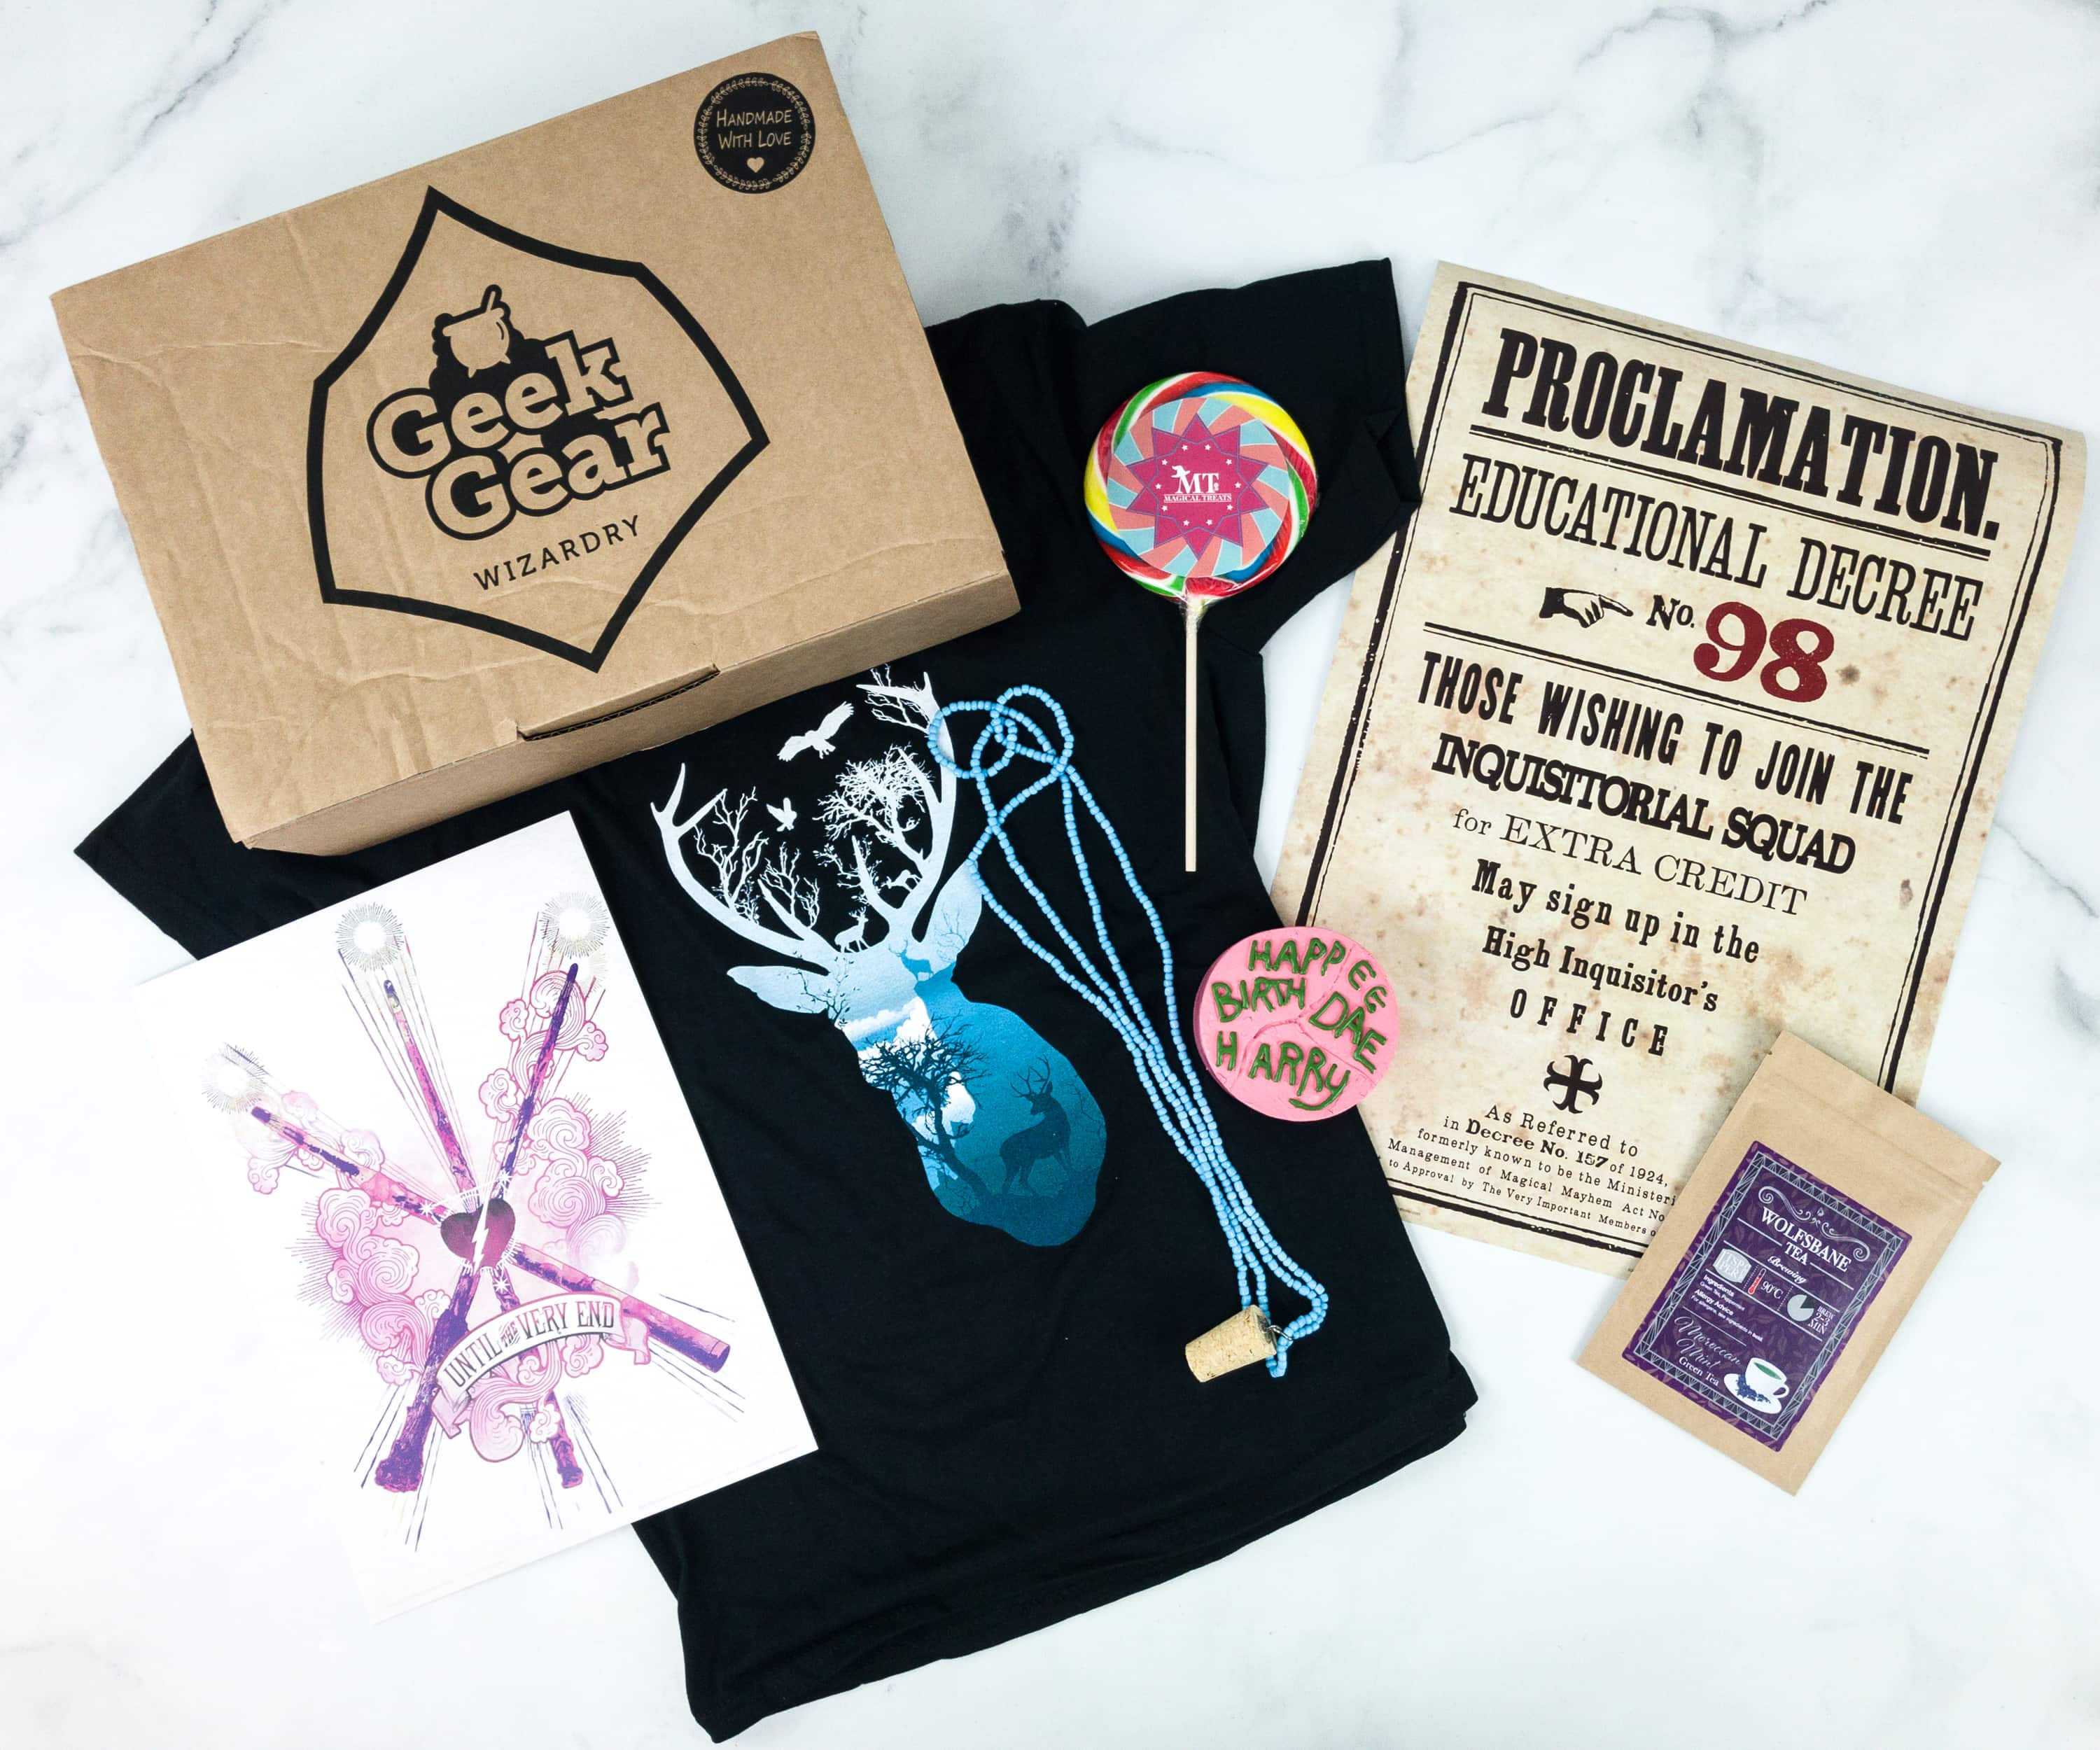 Geek Gear World of Wizardry July 2019 Subscription Box Review & Coupon